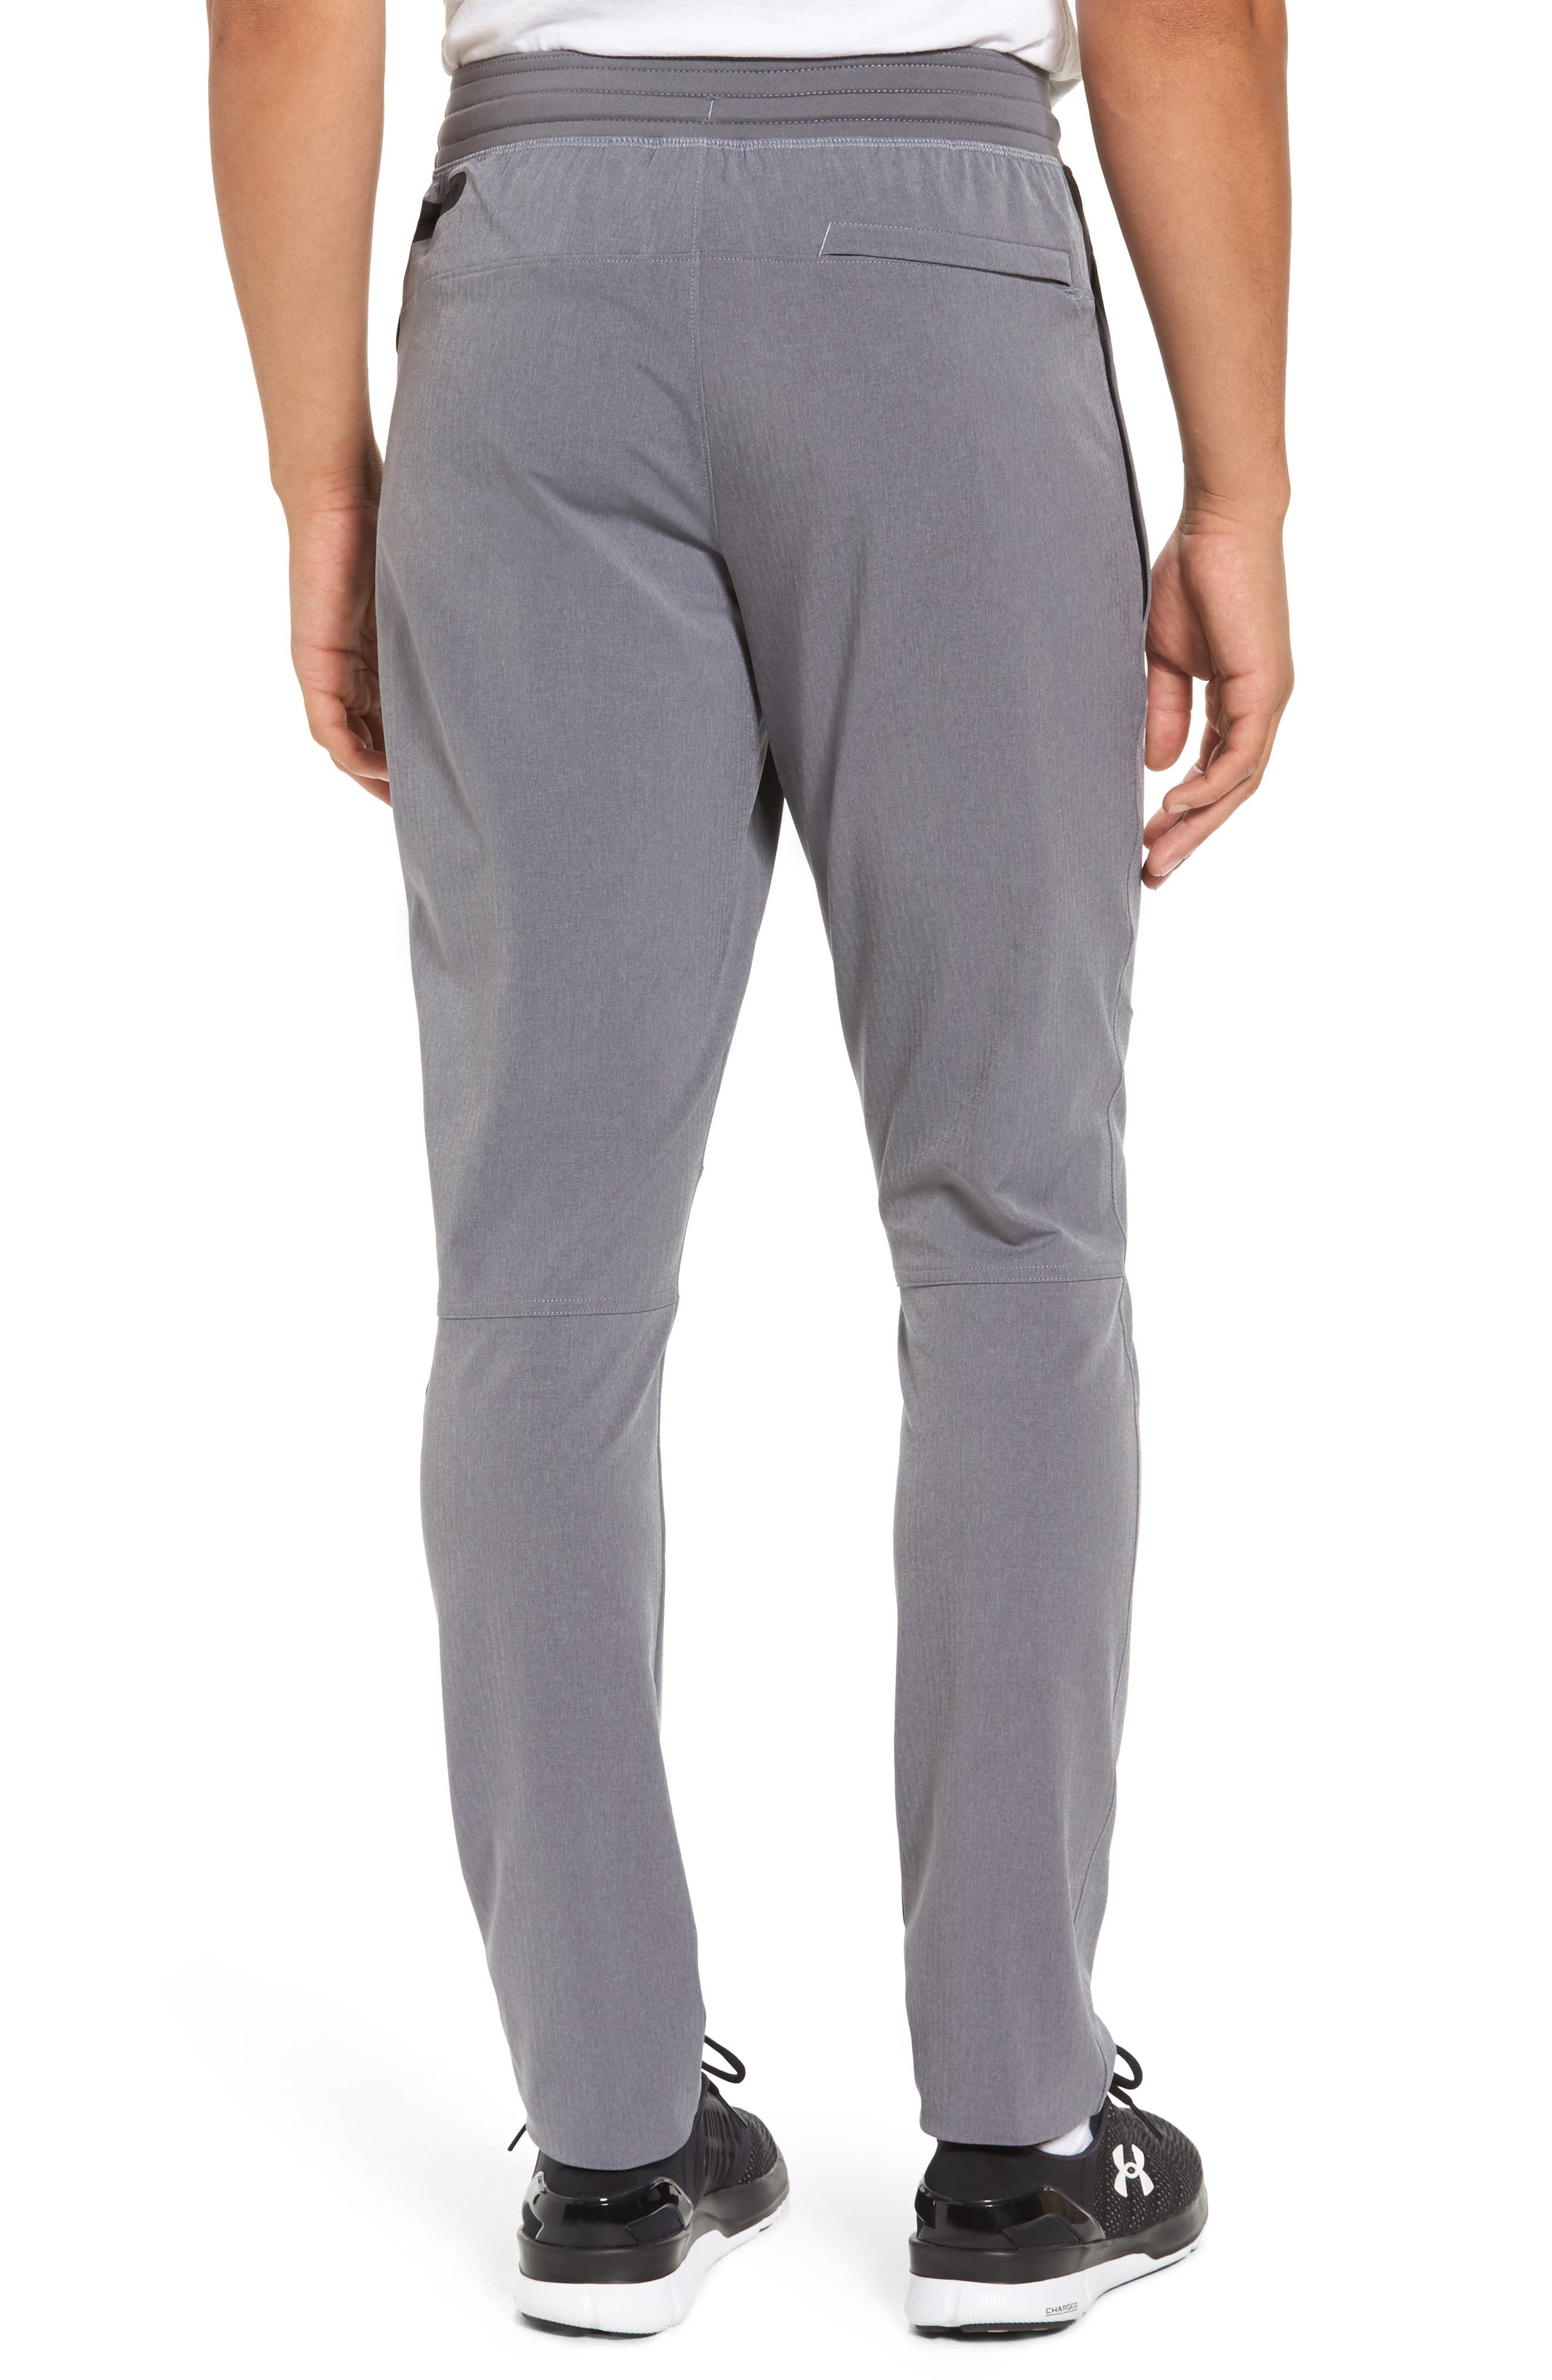 Fitted Woven Training Pants,                             Alternate thumbnail 2, color,                             Grey Heather / Black / Steel